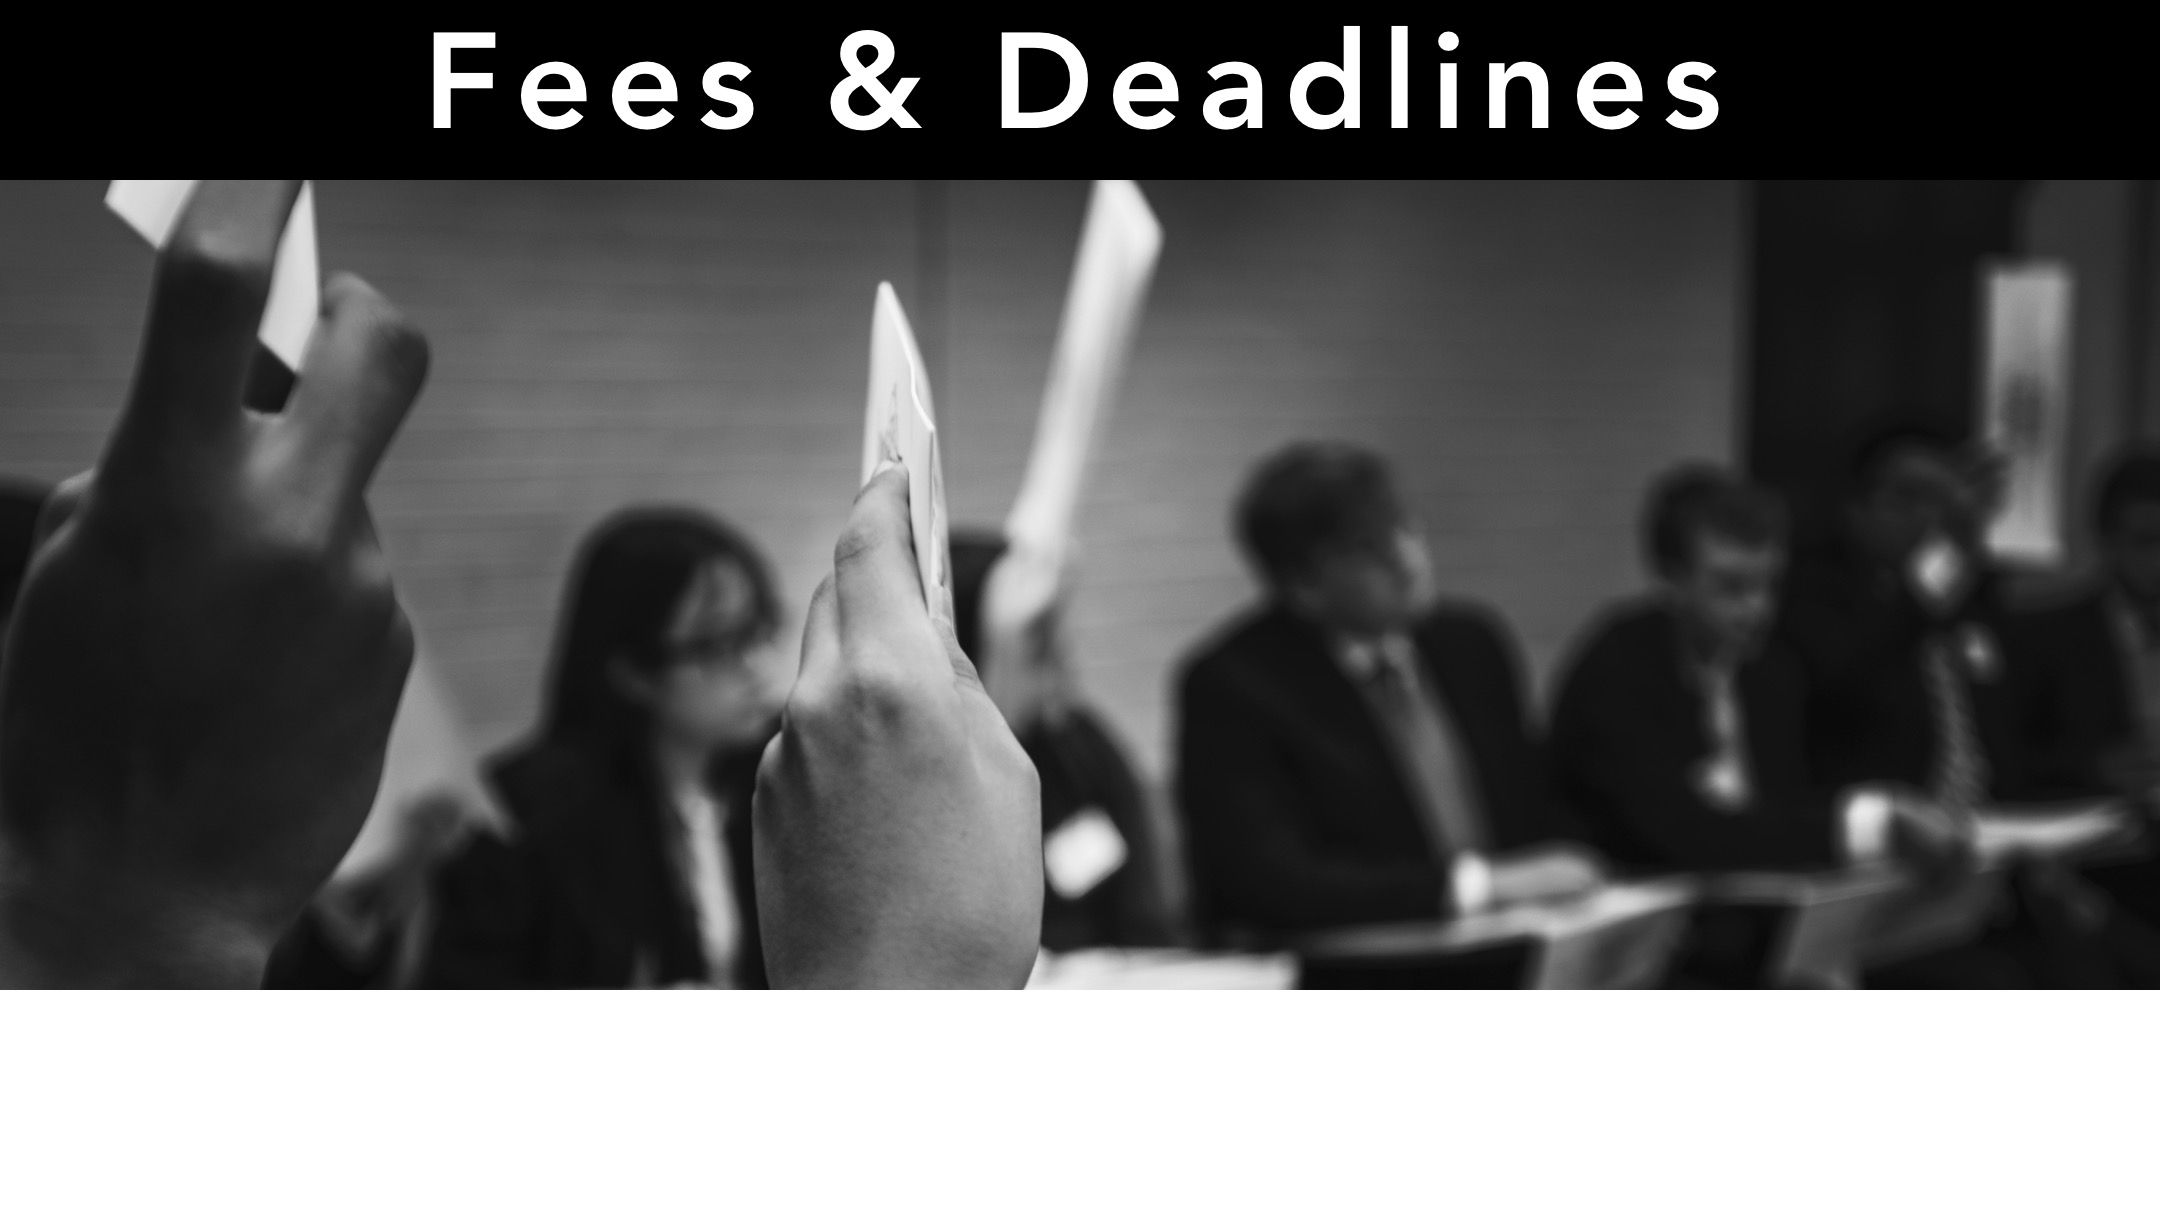 Fees and Deadlines